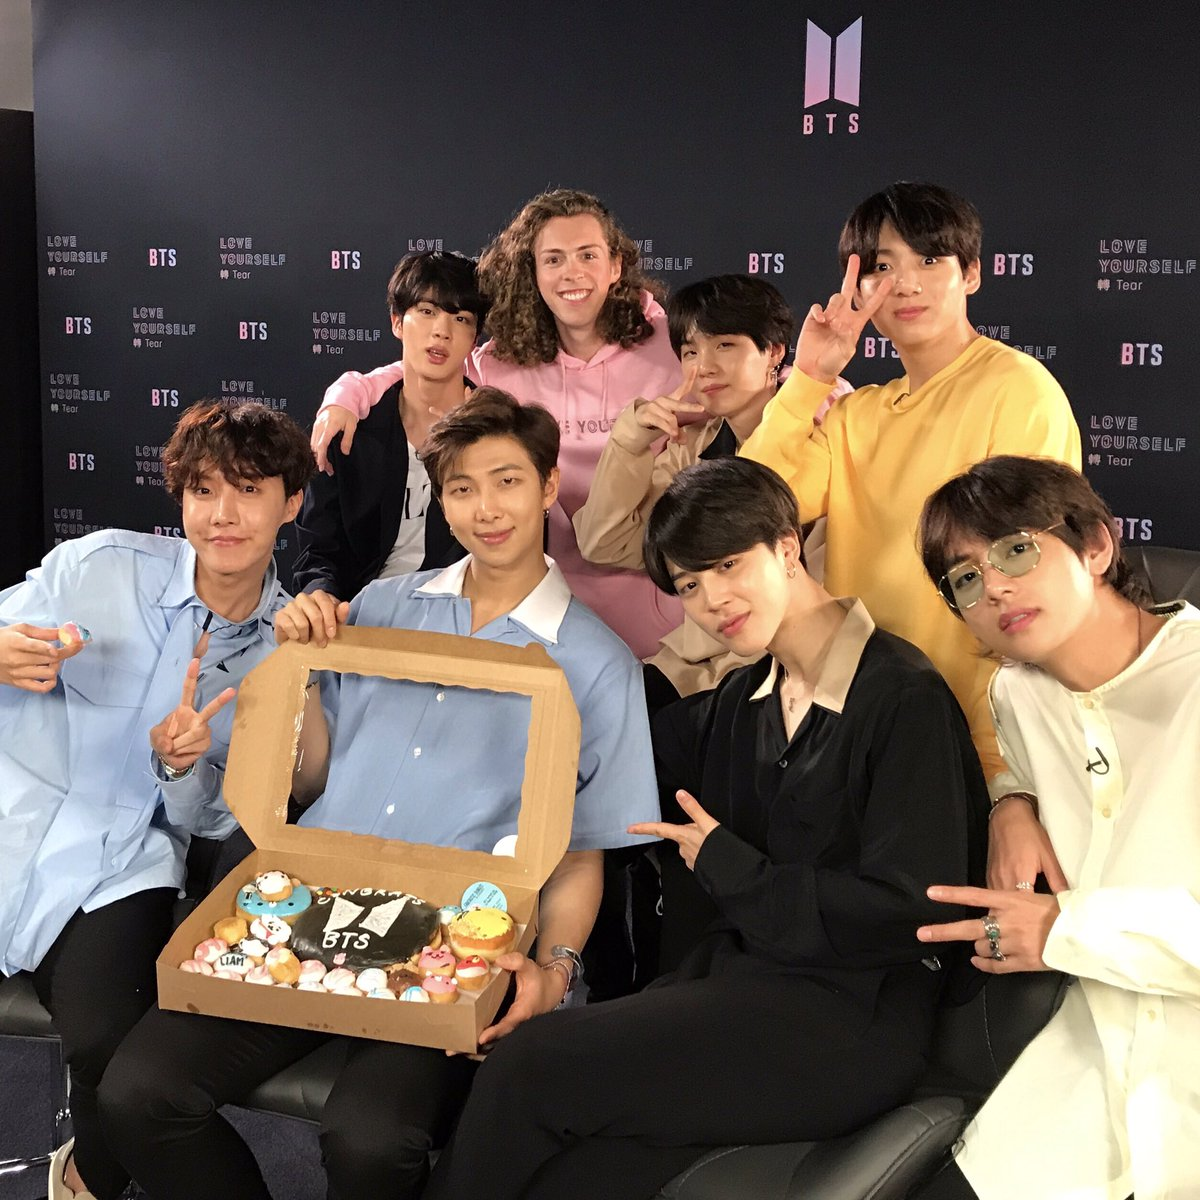 Caught up with my friends @BTS_twt, and I took donuts! My next tweet will be the interview… Stay tuned!